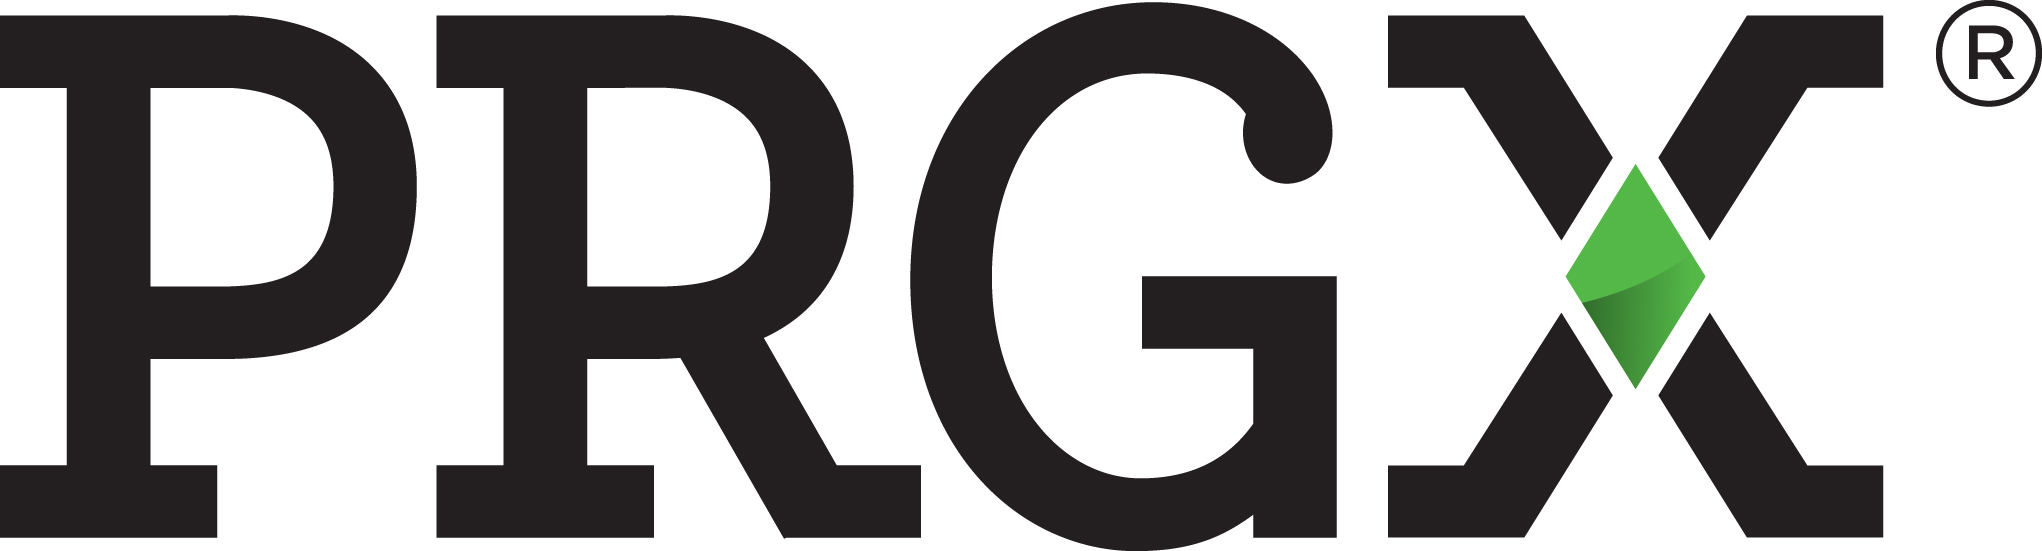 PRGX Global, Inc. to Present at B. Riley and Barrington Research Conferences